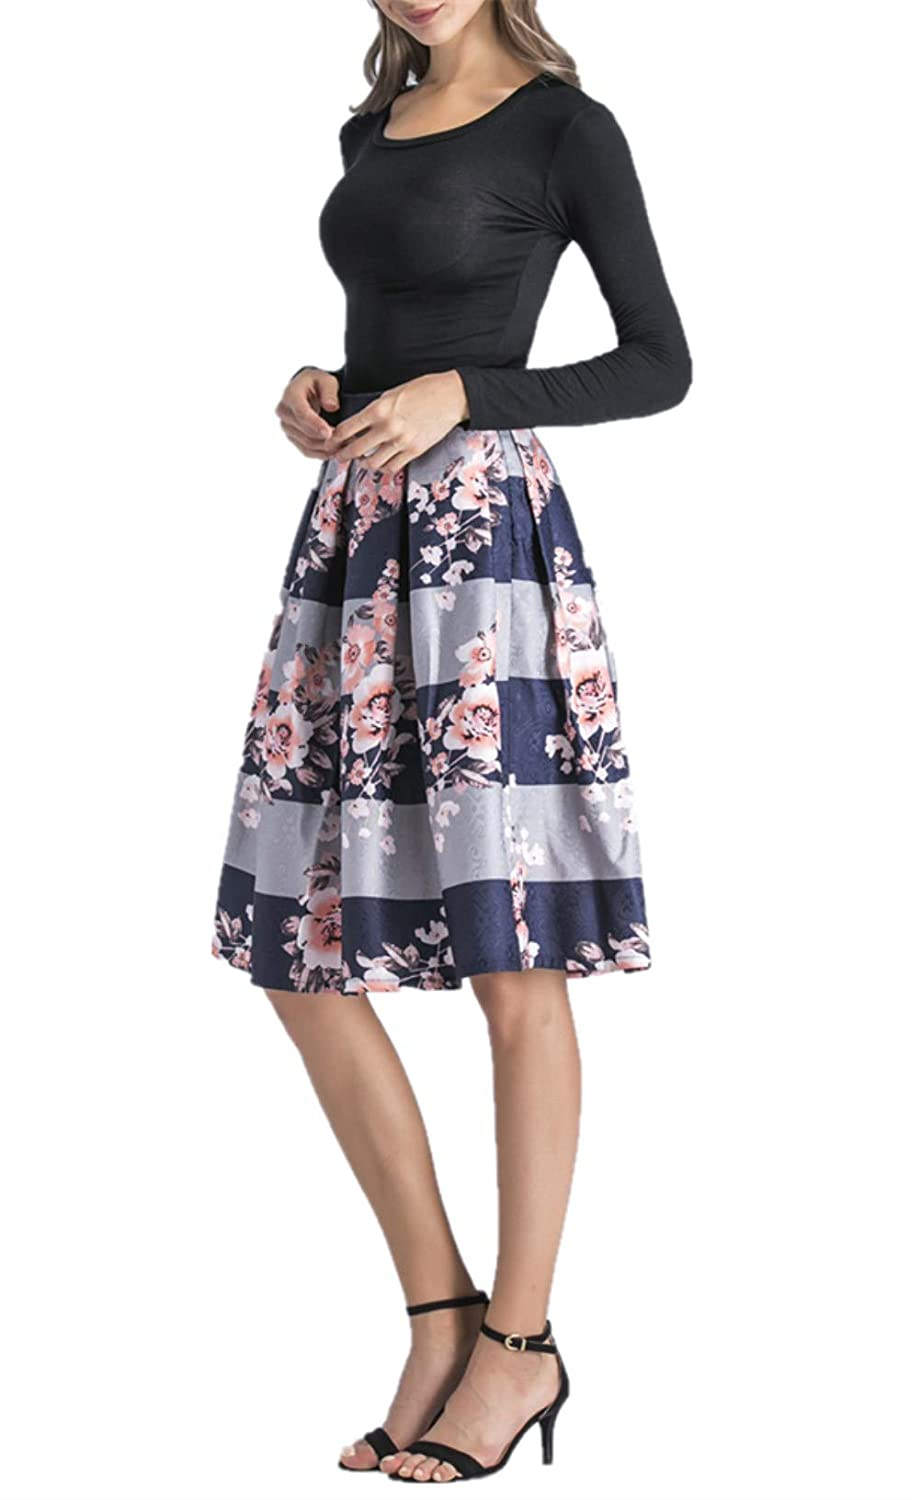 2d8f8ab873 Hanlolo Women's Floral Midi Skirts High Waisted A-Line Cocktail Party Prom  Skirt at Amazon Women's Clothing store: